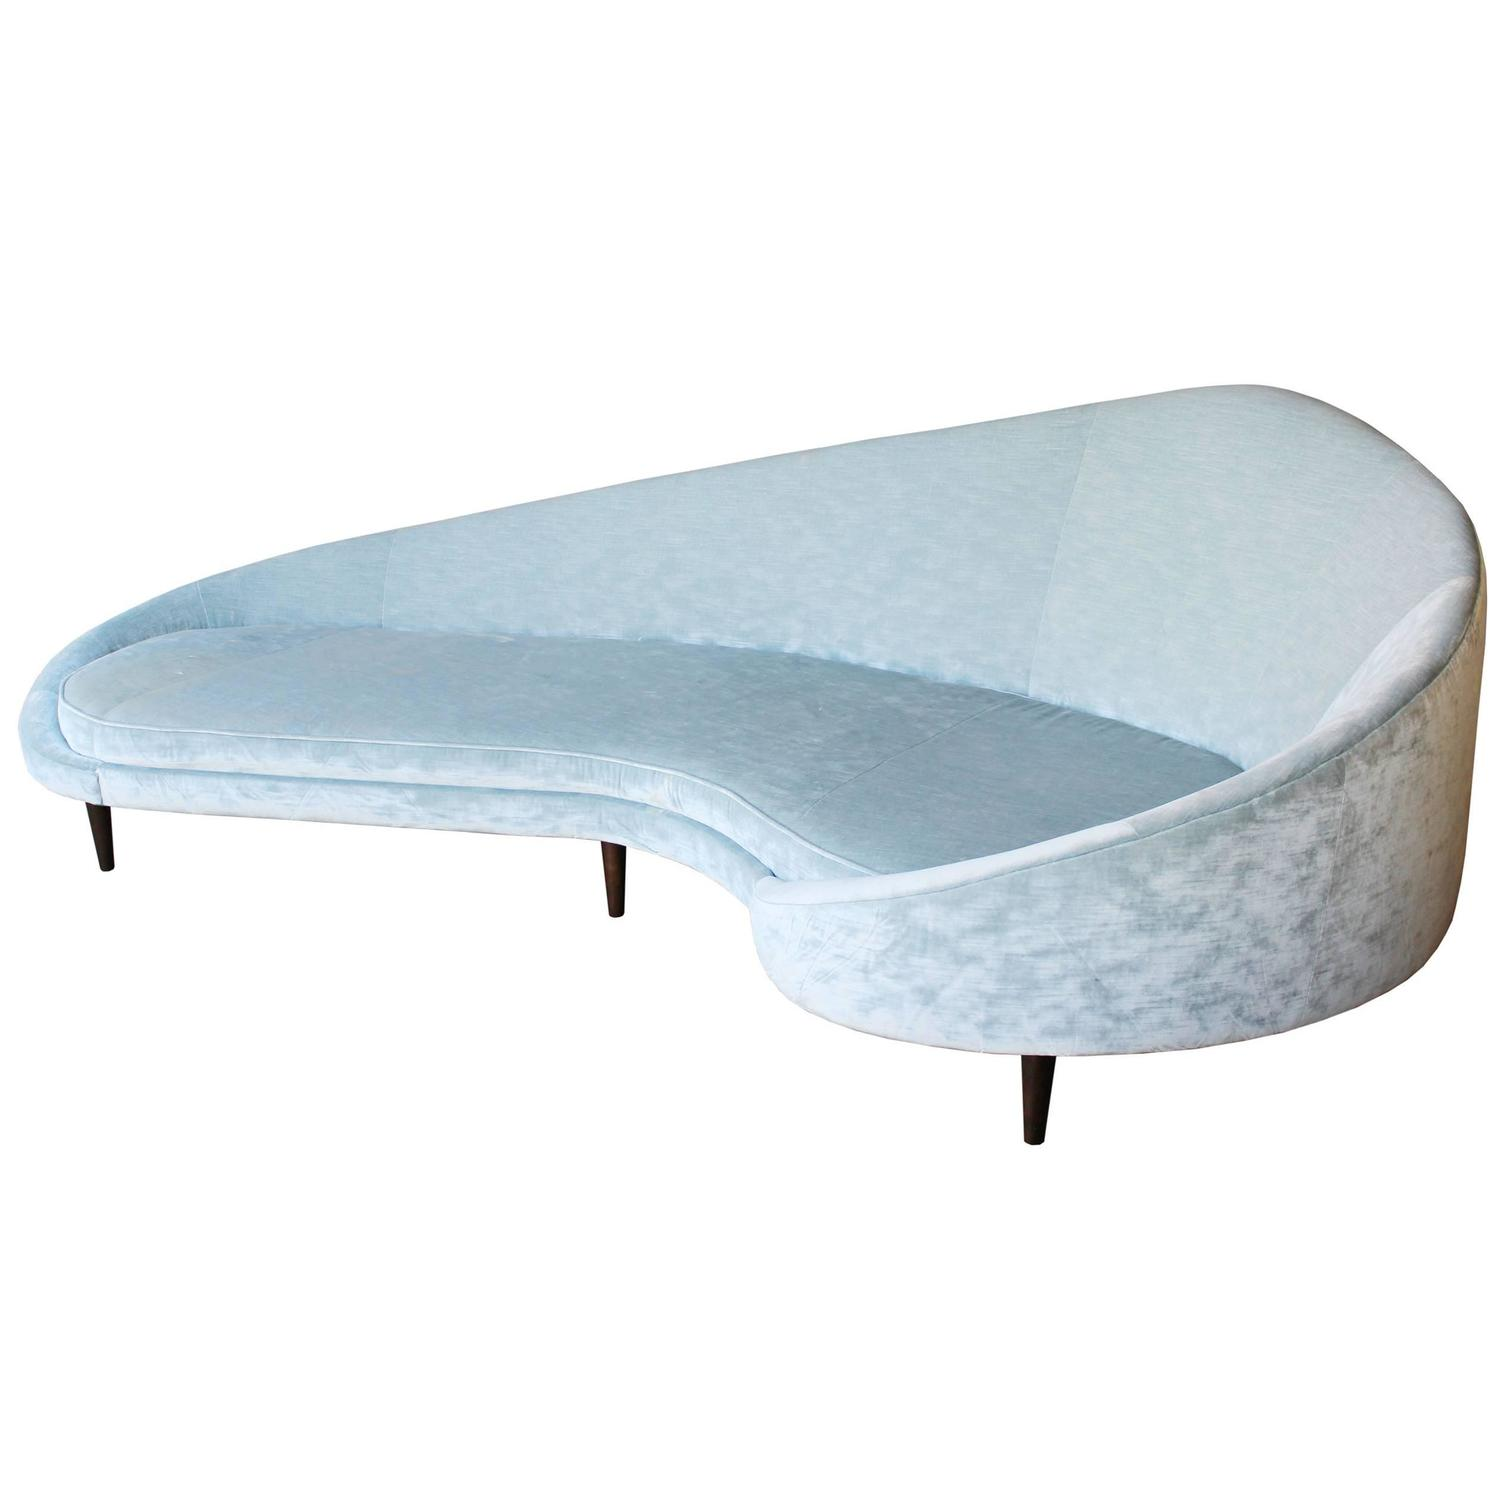 Ico Parisi Comma Sofa Refil Sofa